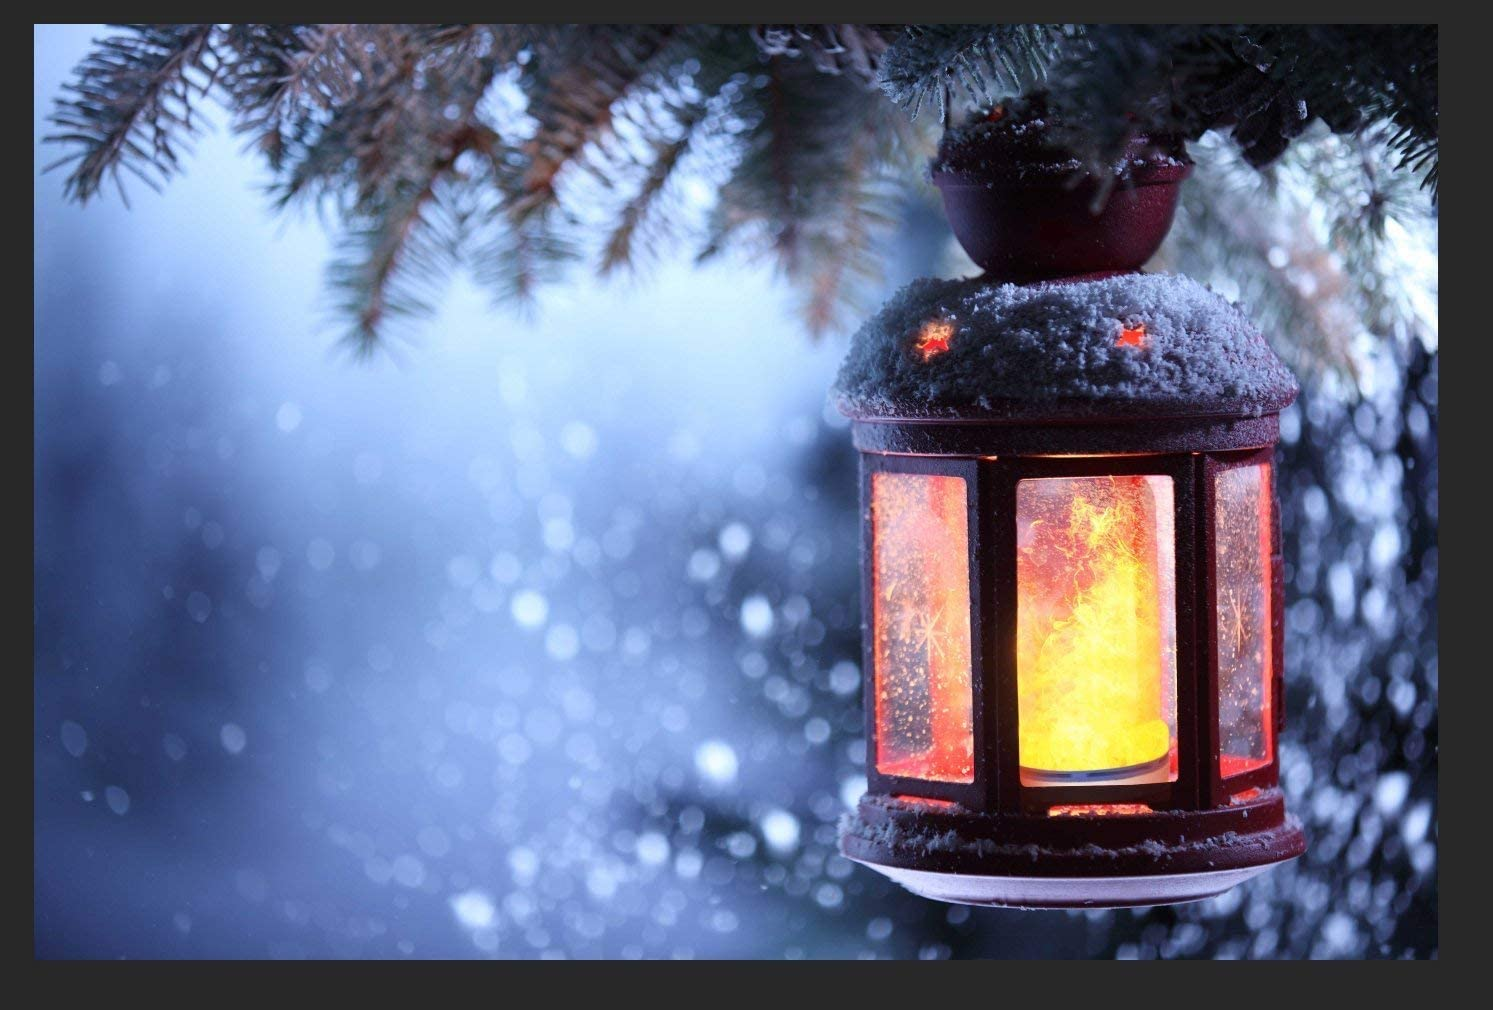 Flame effect light bulbs are the perfect choice for ambient lighting for festive seasons